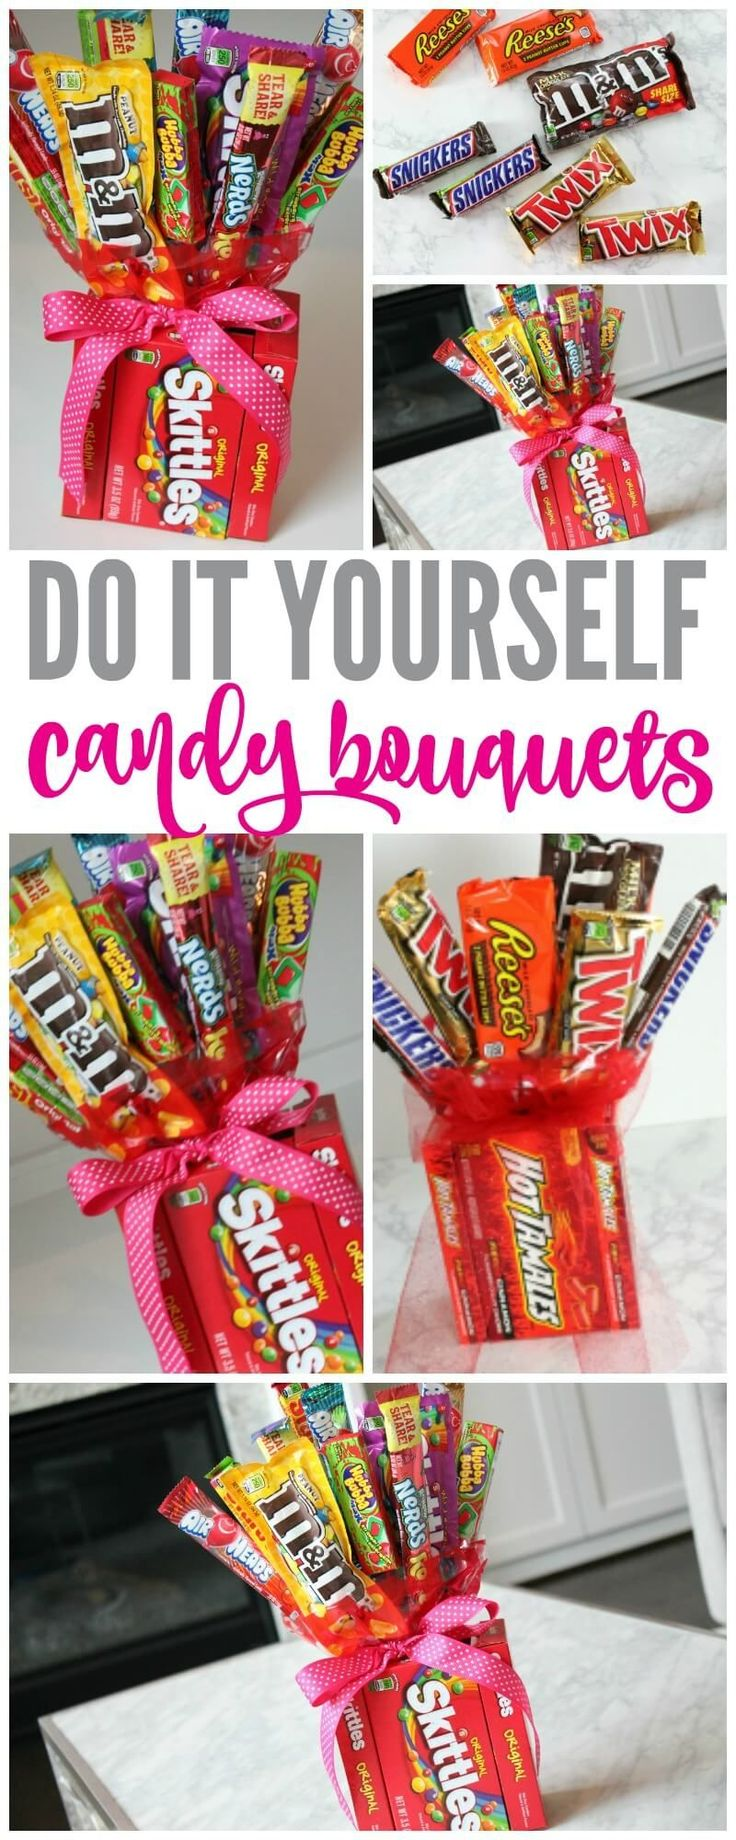 Gift basket ideas 20 pinterest make your own candy bouquets for valentines day fathers day mothers day birthday negle